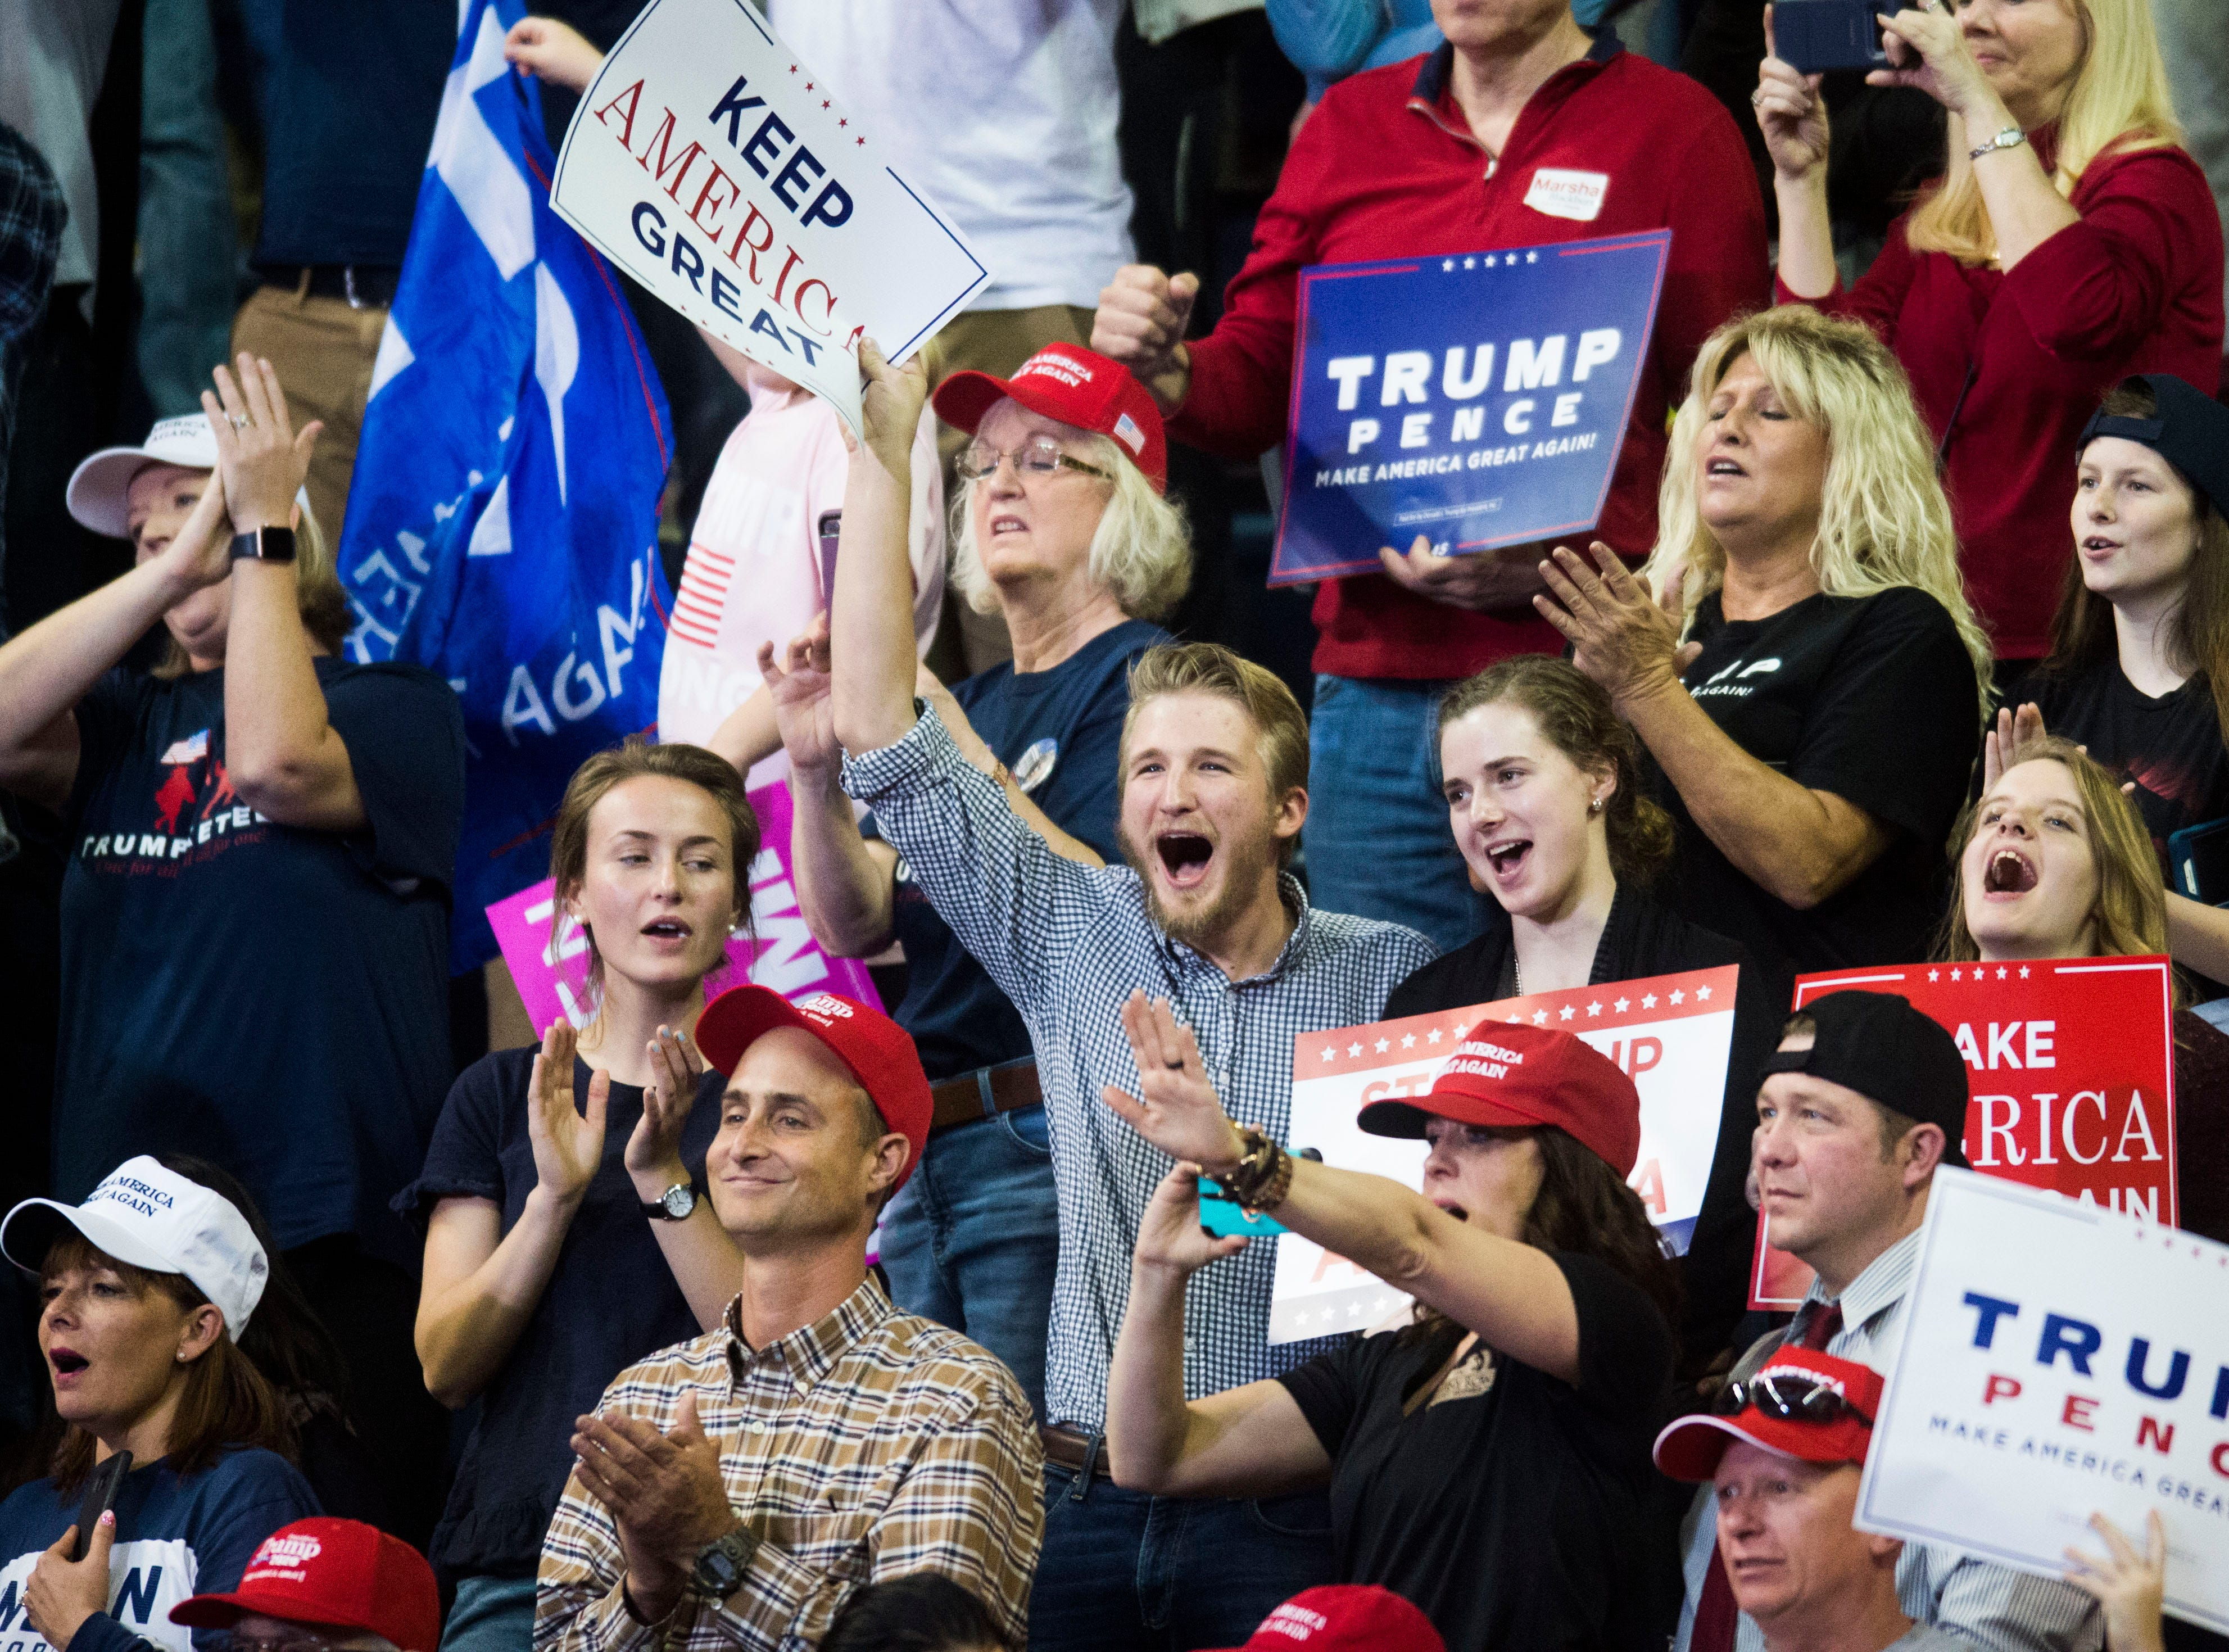 The crowd cheers during a Donald Trump rally in support of U.S. Rep. Marsha Blackburn for the U.S. Senate at McKenzie Arena in Chattanooga, Sunday, Nov. 4, 2018.